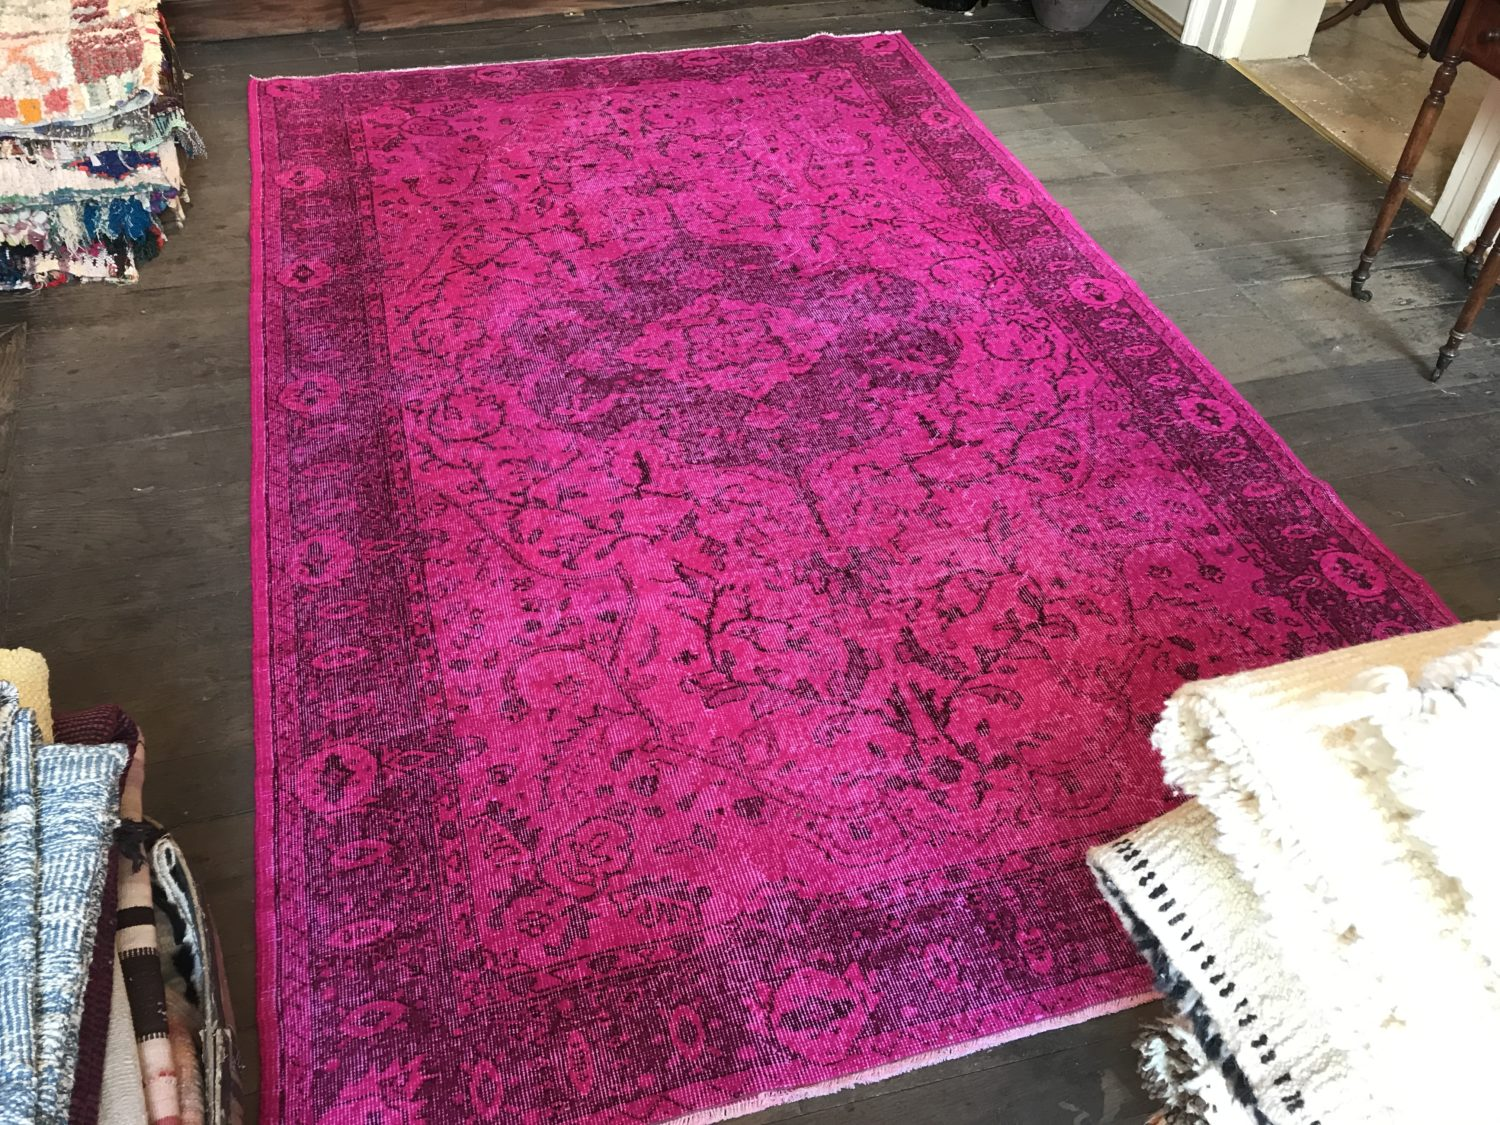 Hot Pink Overdyed Rug Medium Size Emily S House London